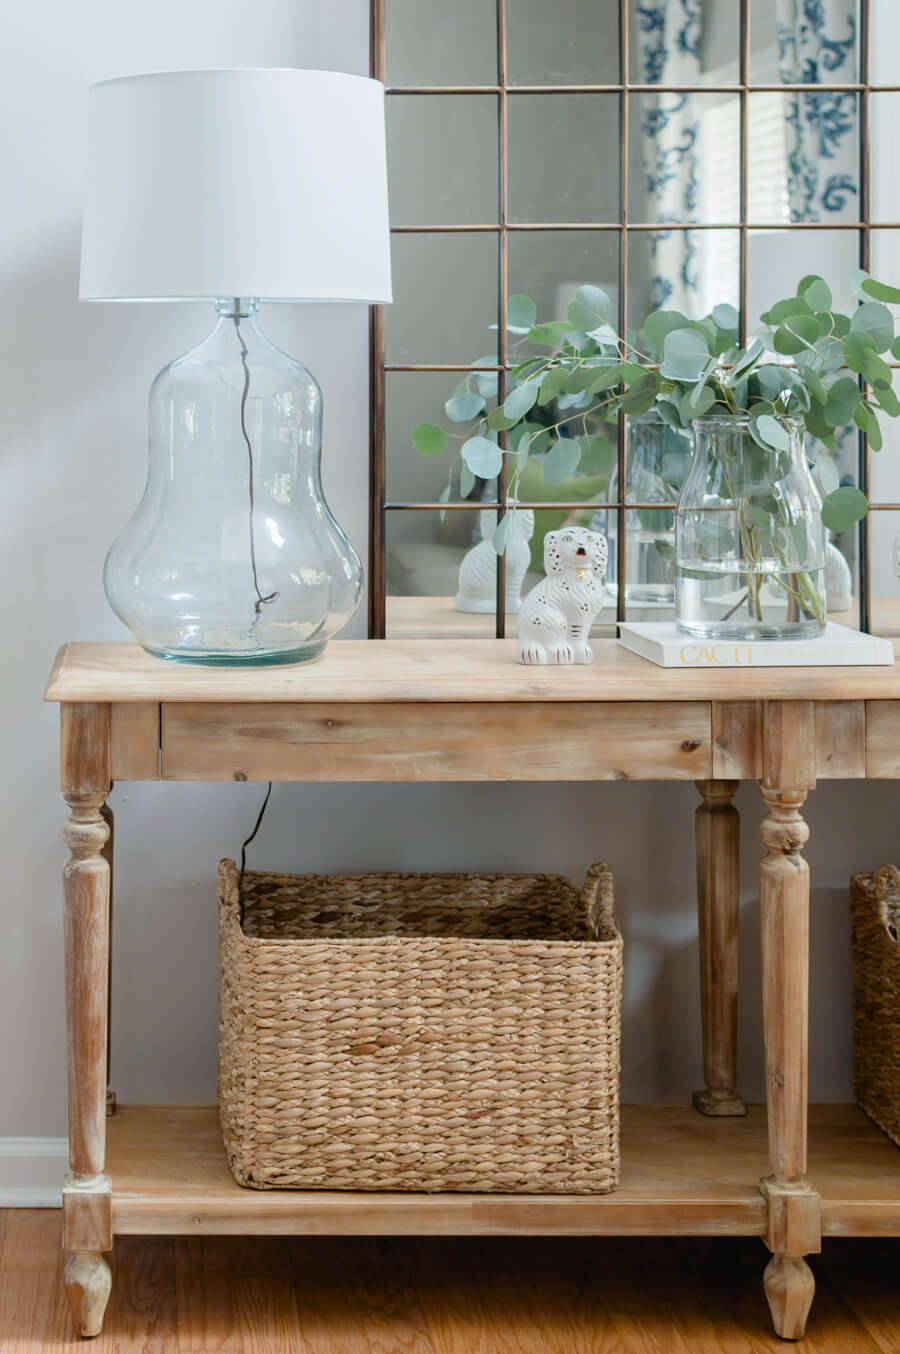 Welcome your guest in style with a pretty entry. Everett table styling with pretty lamps, arch mirror and baskets.